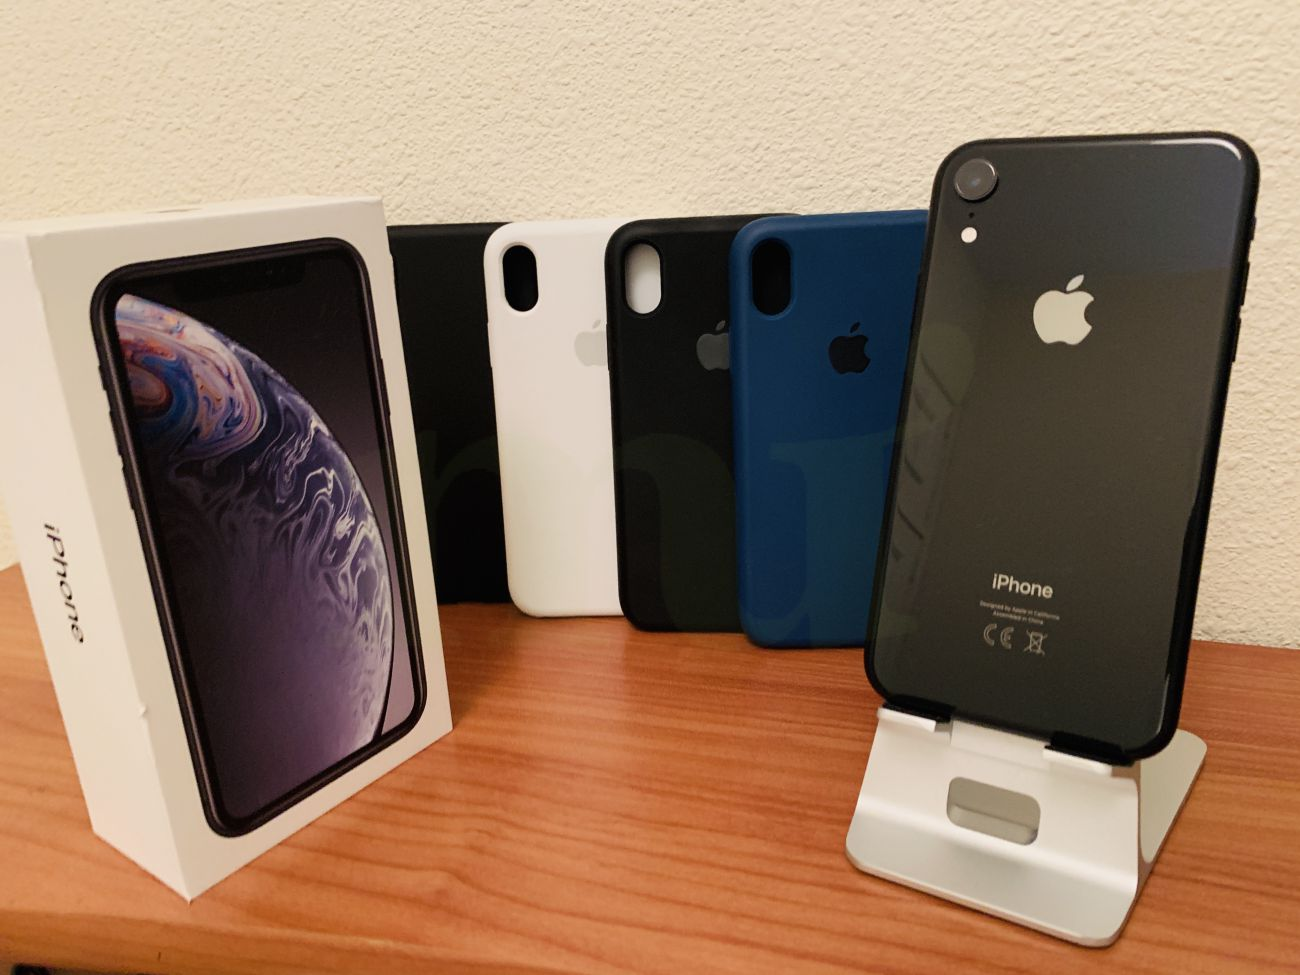 vender-iphone-iphone-xr-apple-segunda-mano-20190212173454-1